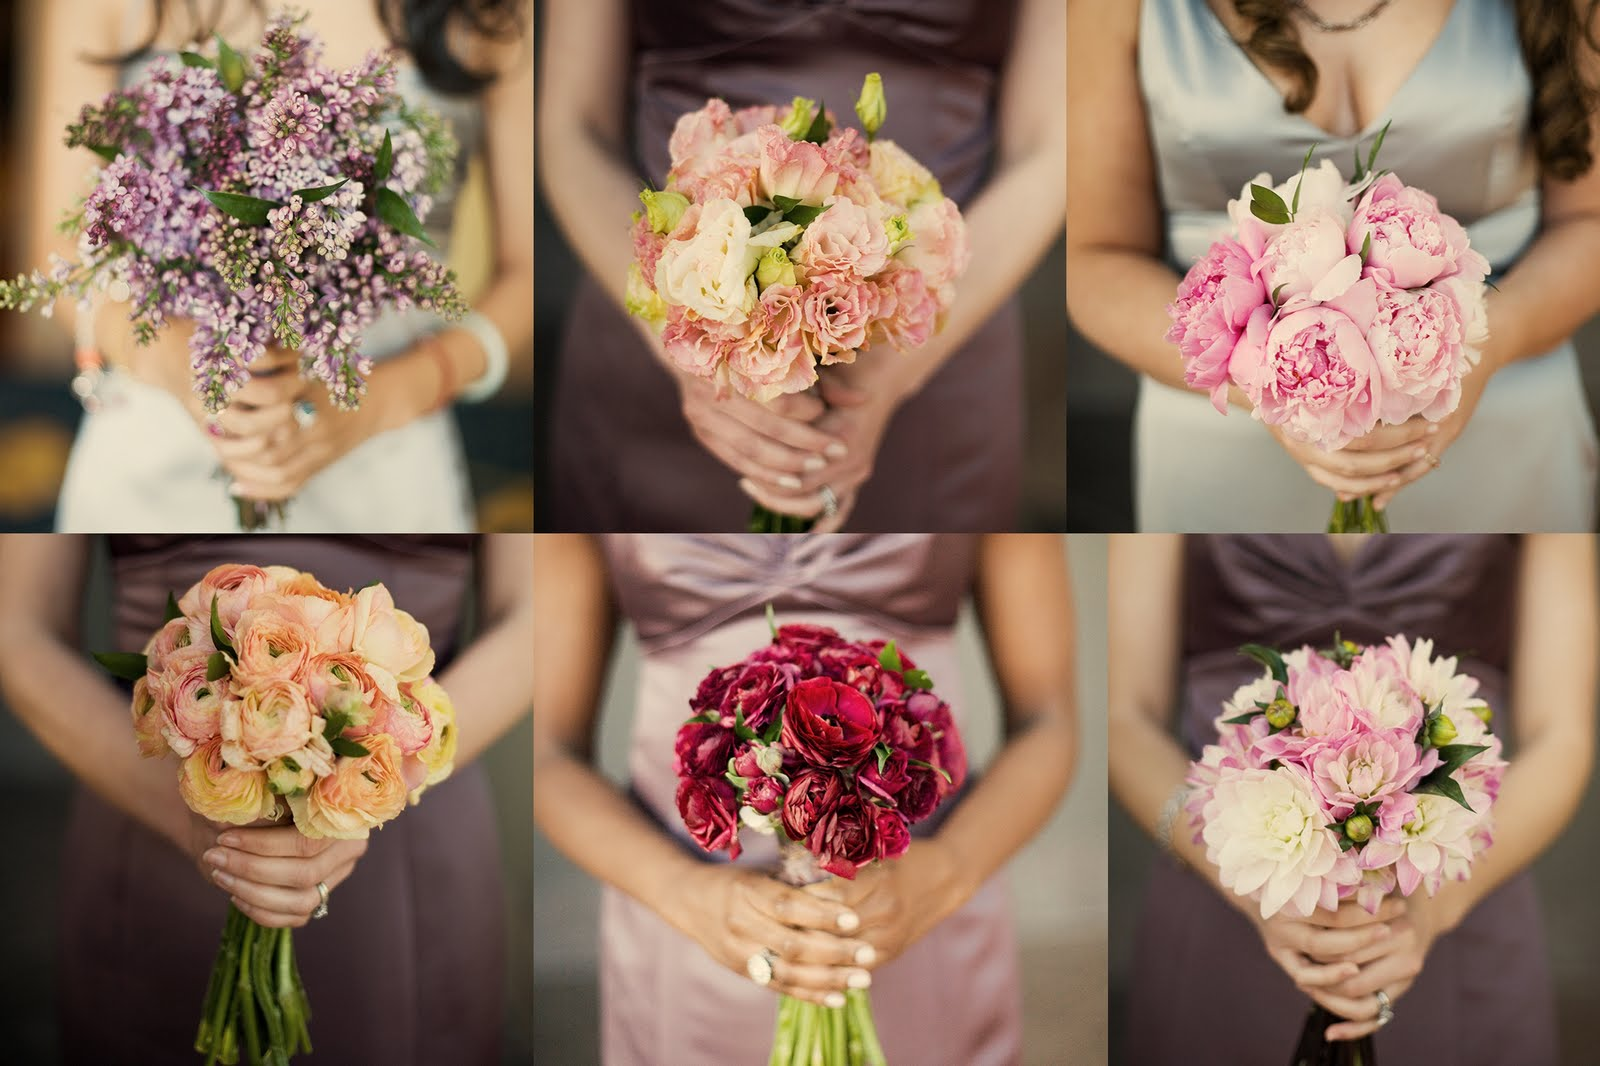 Wedding Flower Trends: Mismatched Bridesmaid Bouquets